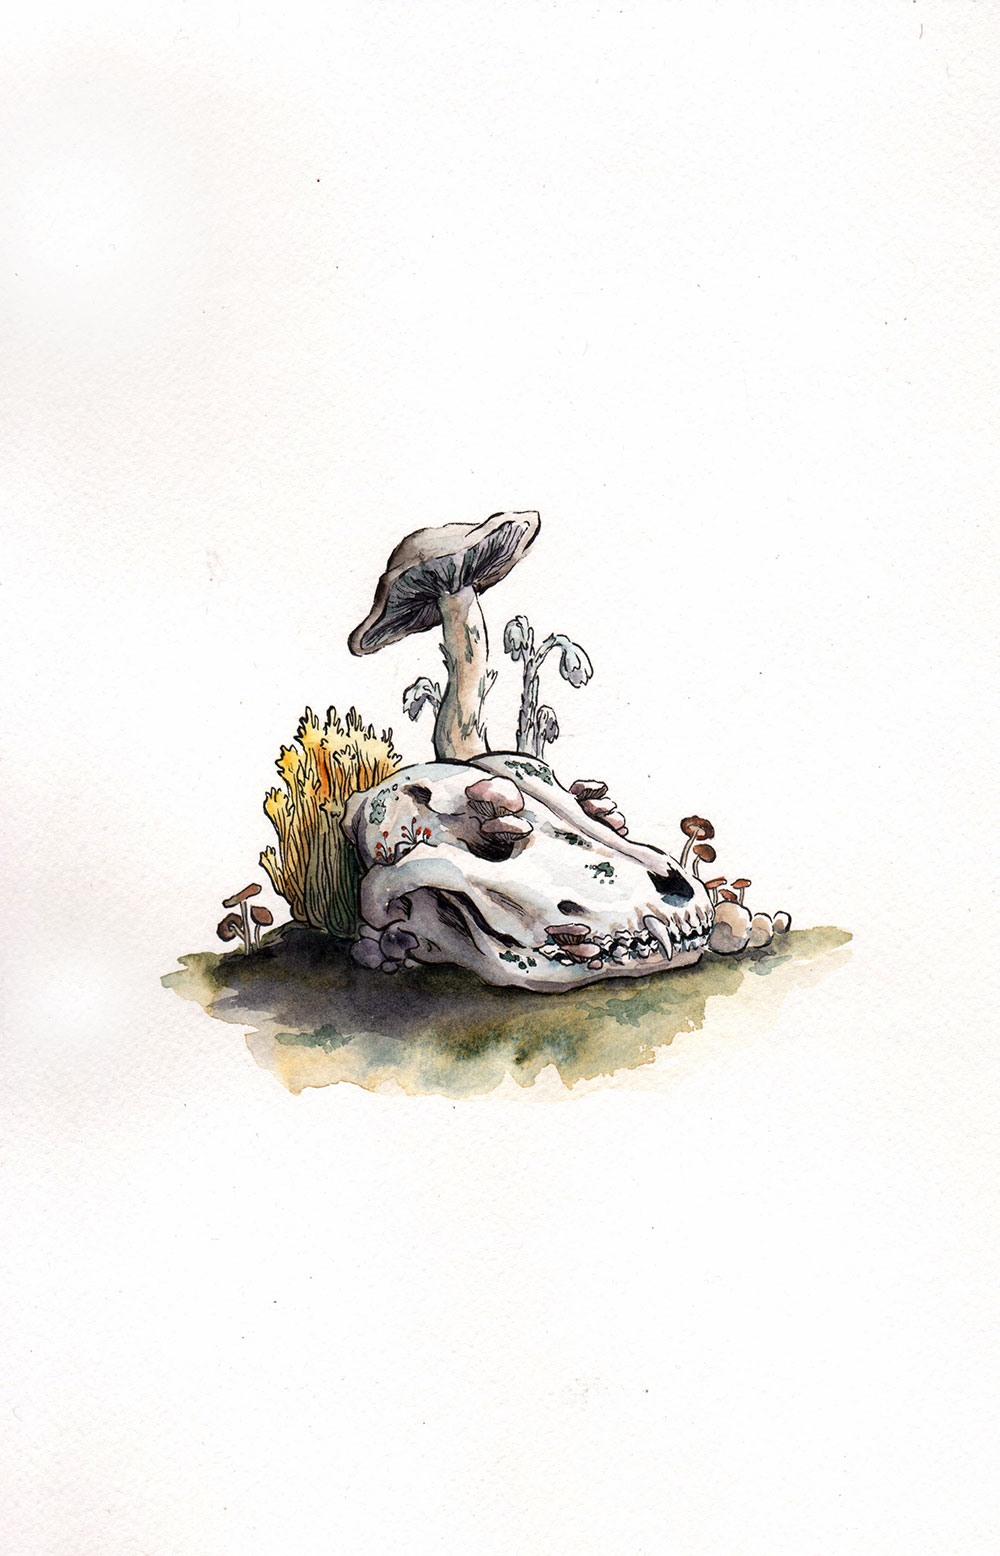 canine skull consumed by various fungi, each sprouting around, on, or through the holes of the skull